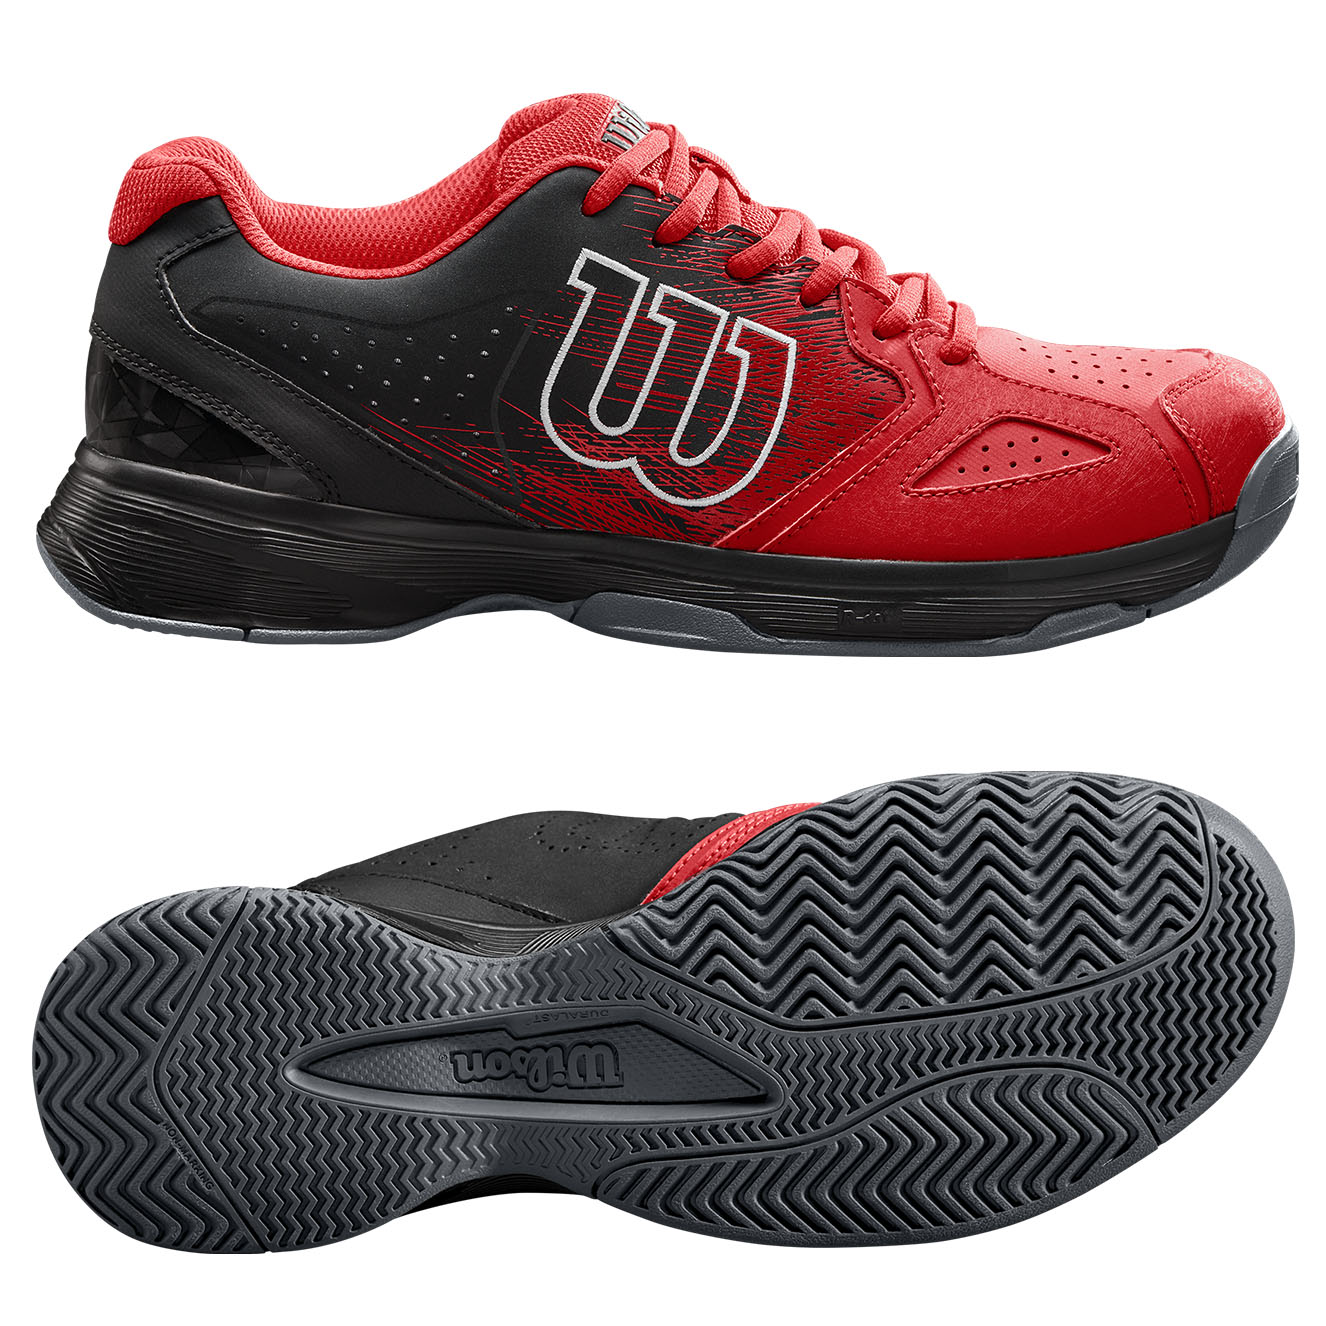 wilson kaos stroke mens tennis shoes 10 uk all these deals